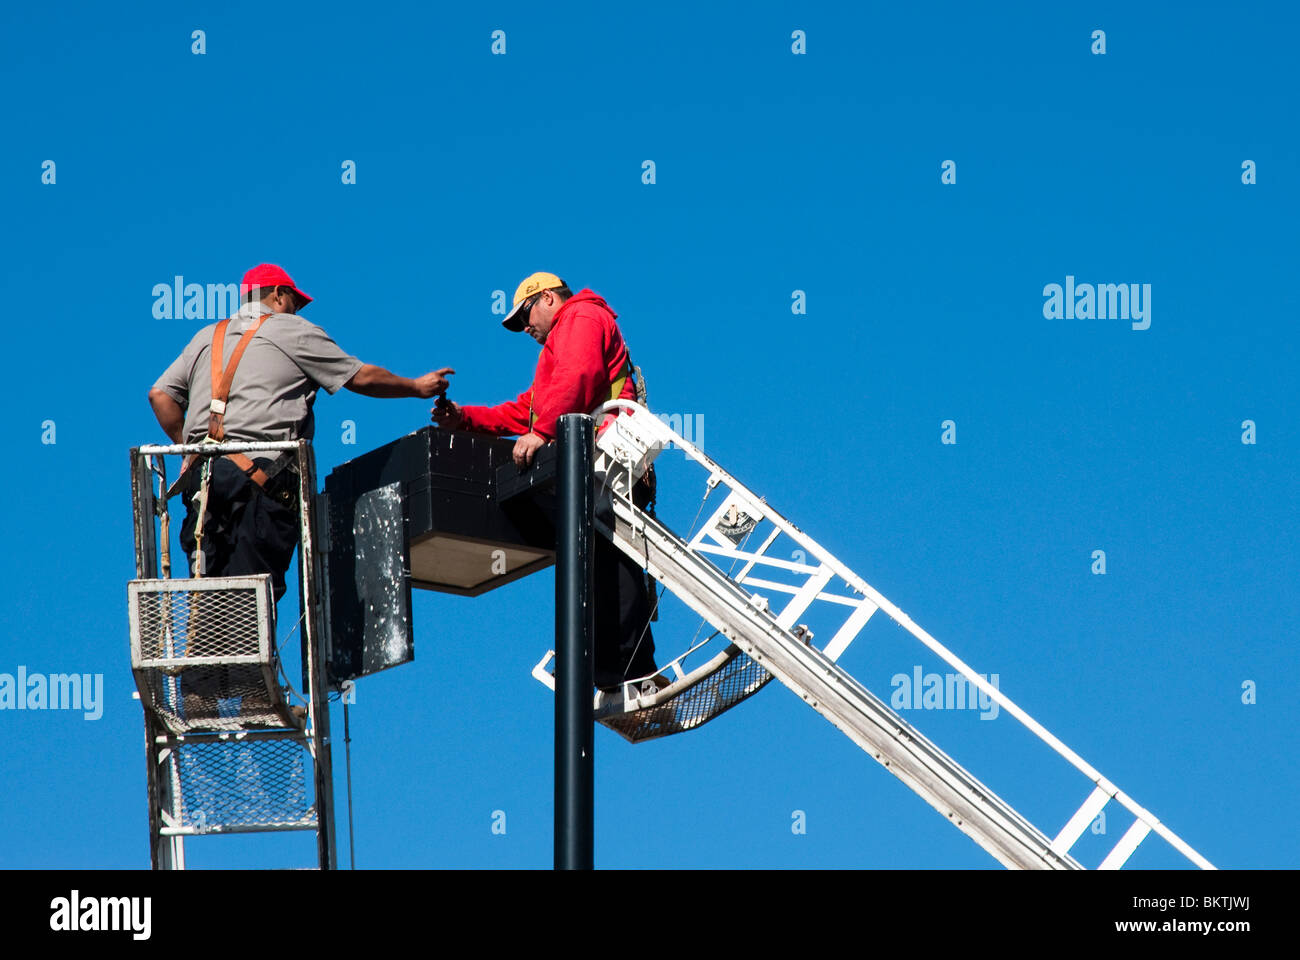 maintenance workers work as a team to repair a lighting fixture - Stock Image